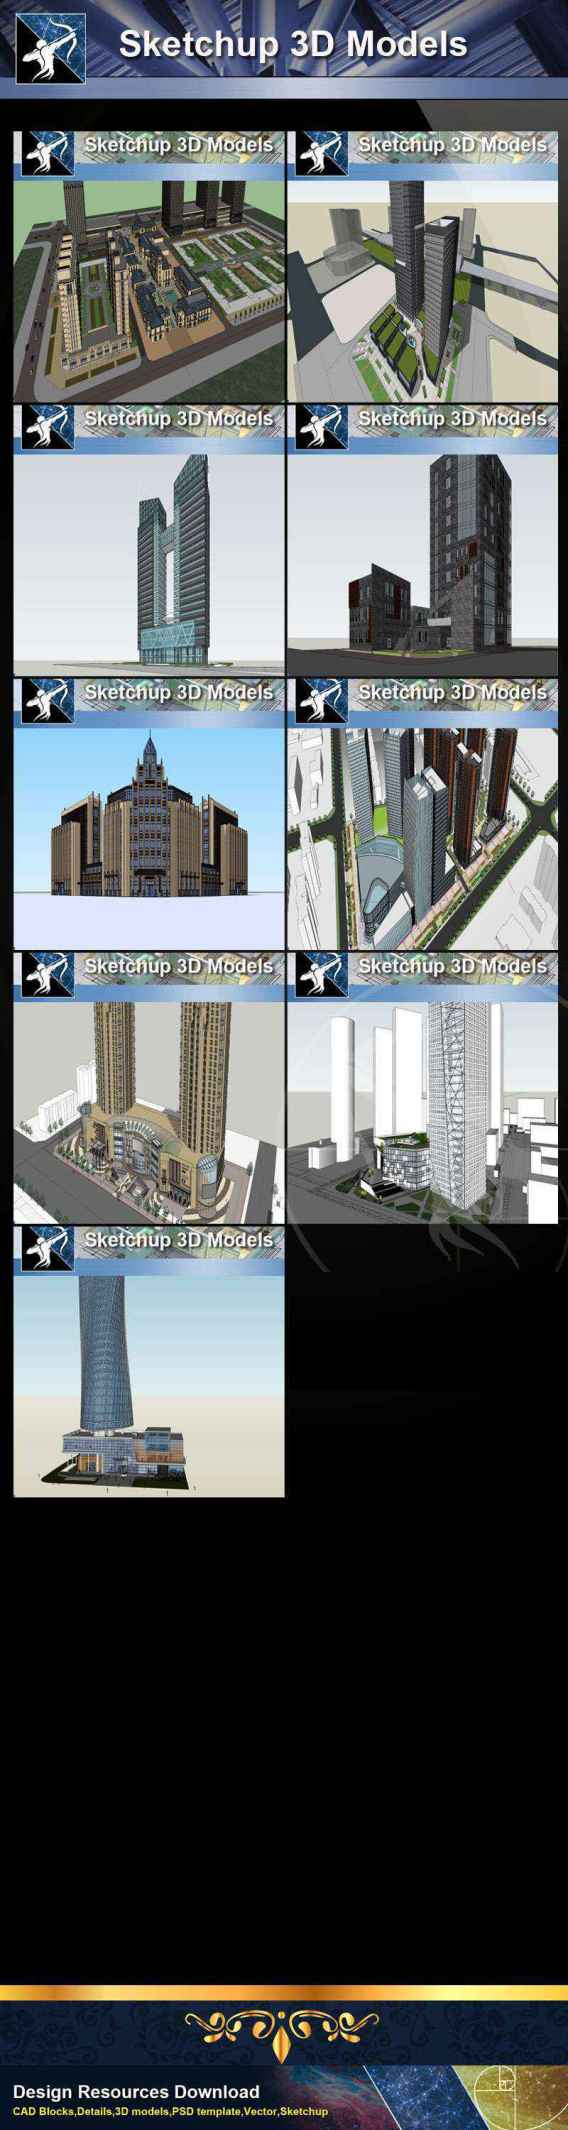 ★Best 37 Types of Commercial,Shopping Mall Sketchup 3D Models Collection